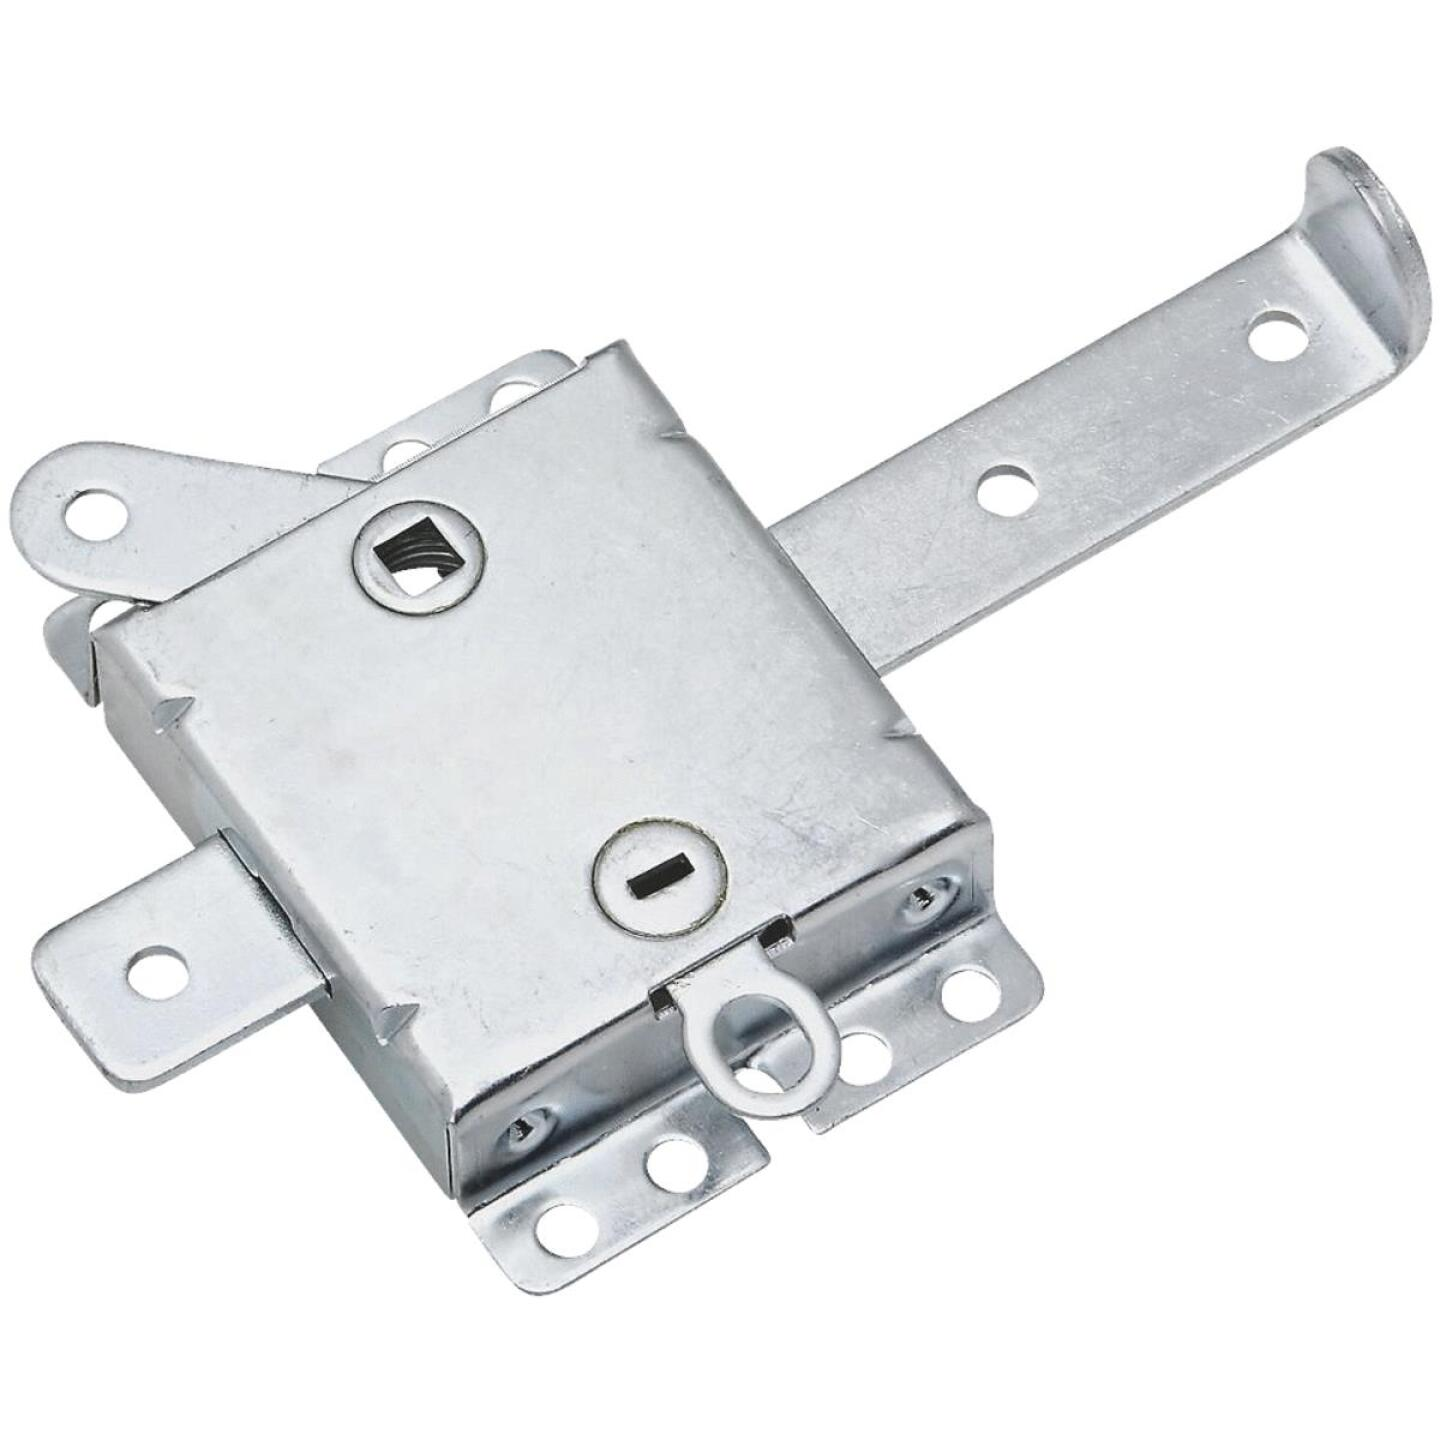 National 7-1/2 In. W. Garage Door Side Lock Image 1